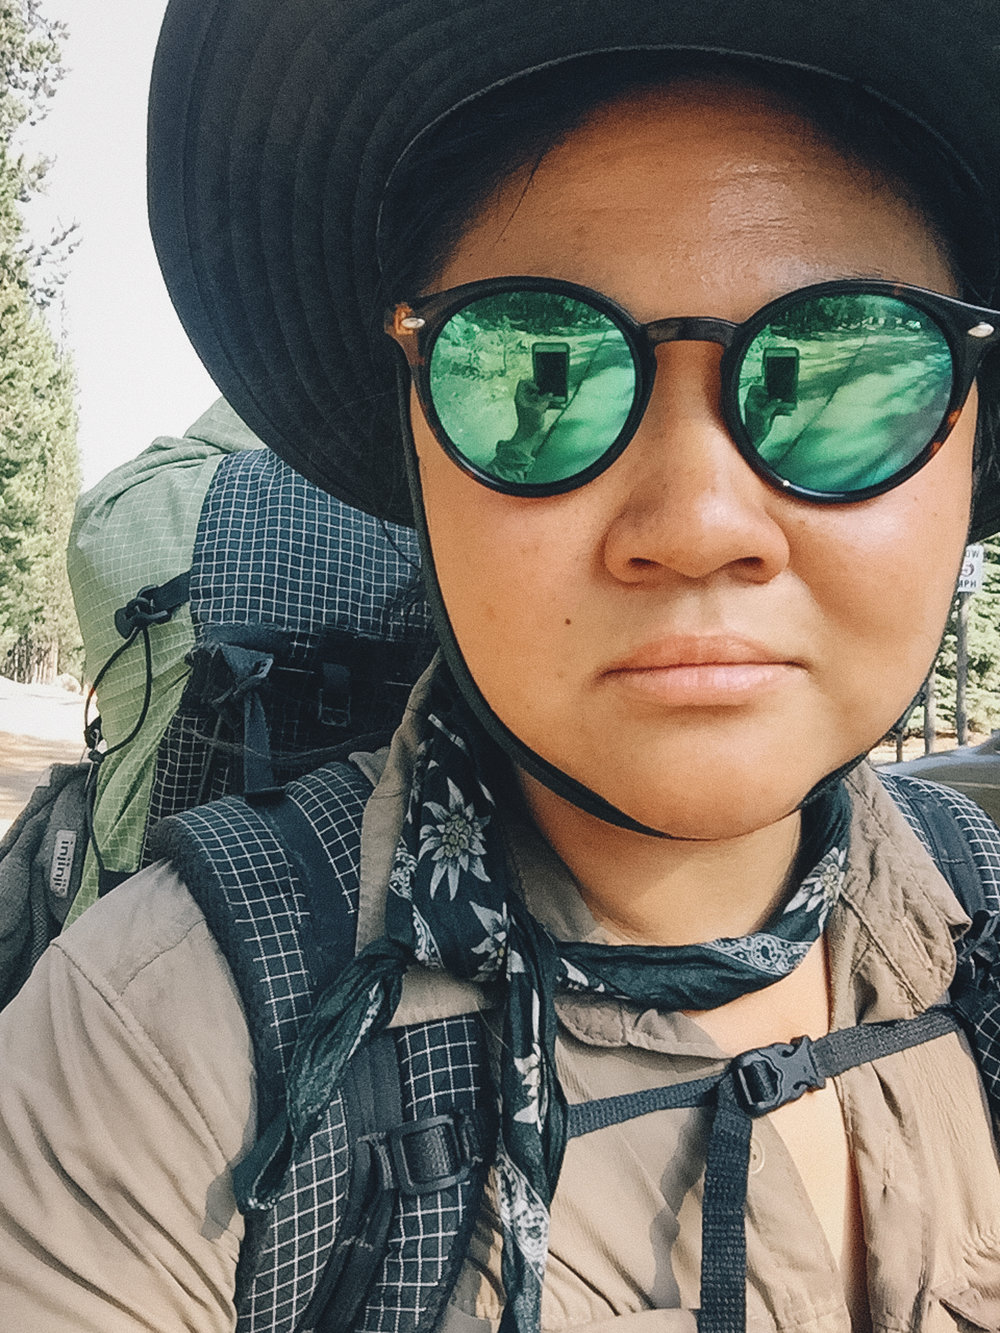 I spent my first three weeks out running from mosquitos and hiding from the heat. This was my Asian safari guide look when I was trying to shield myself from the sun.